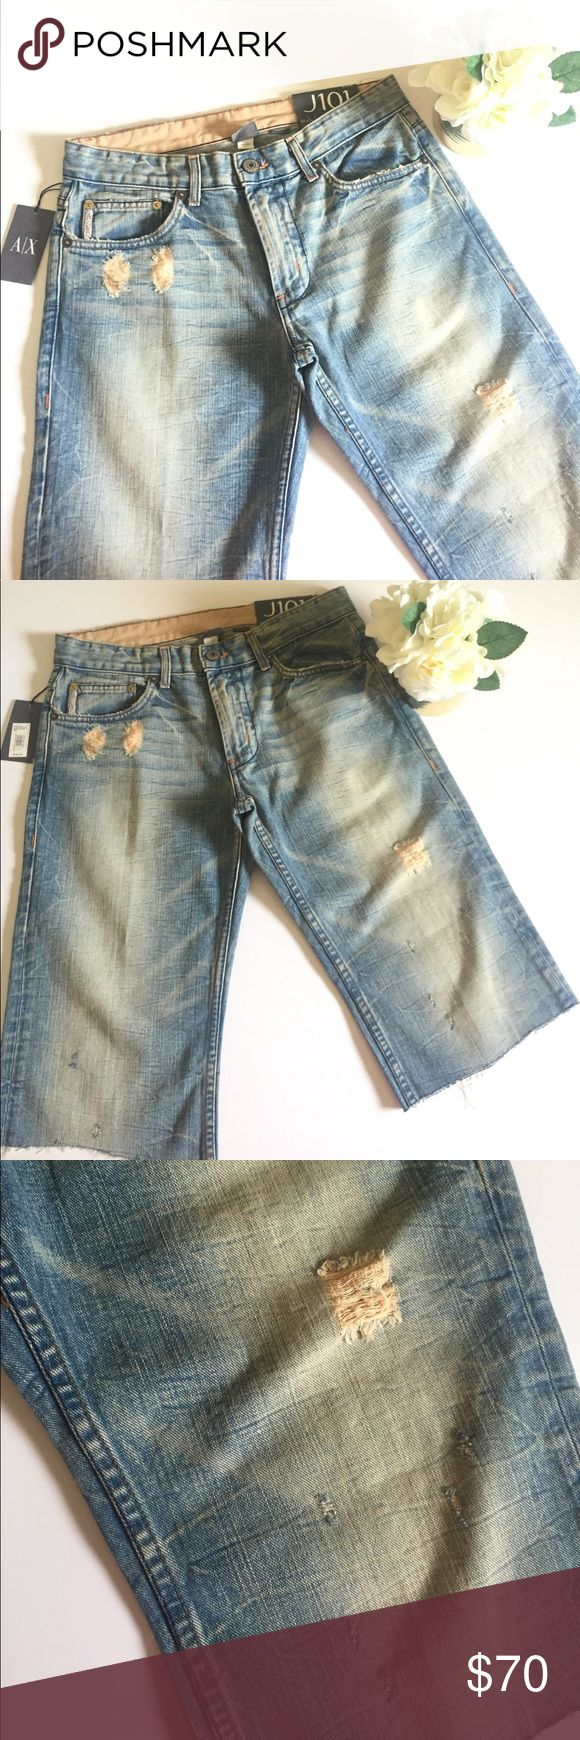 """[ Armani Exchange ] Boot Leg Low Rise Jean Shorts Super relaxed look with these cut off shorts . Could also be described as Bermudas or Capri shorts. Distressed and light wash .                       Flat lay measurement :  Waist: 16.5"""" Rise: 10"""" Inseam: 16"""" All items come from a smoke/pet free  home. ☺️ A/X Armani Exchange Shorts"""